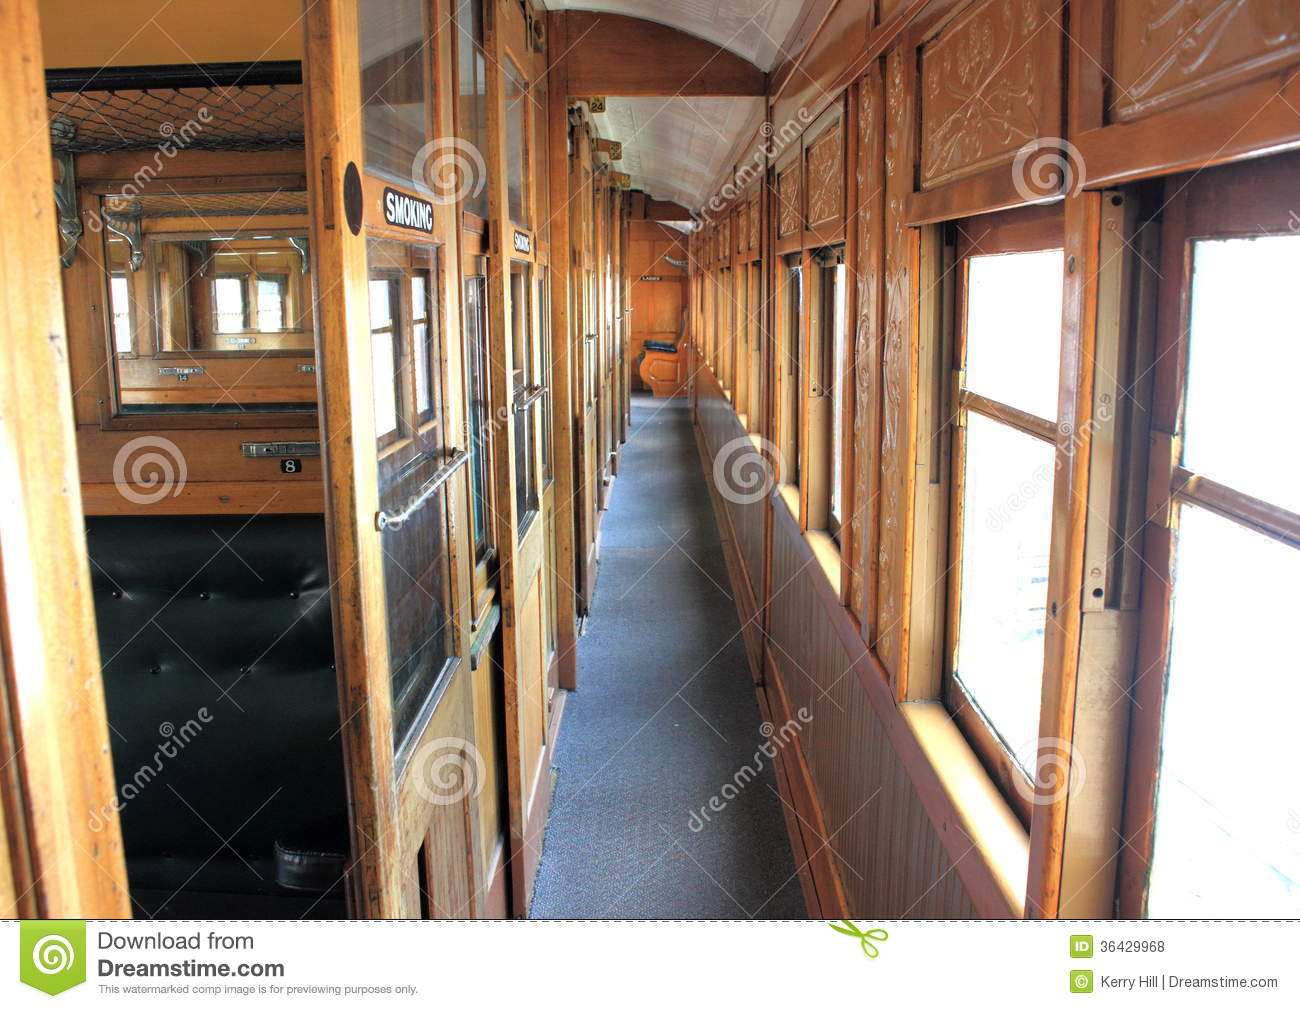 old steam train interior corridoor royalty free stock photos image 36429968. Black Bedroom Furniture Sets. Home Design Ideas